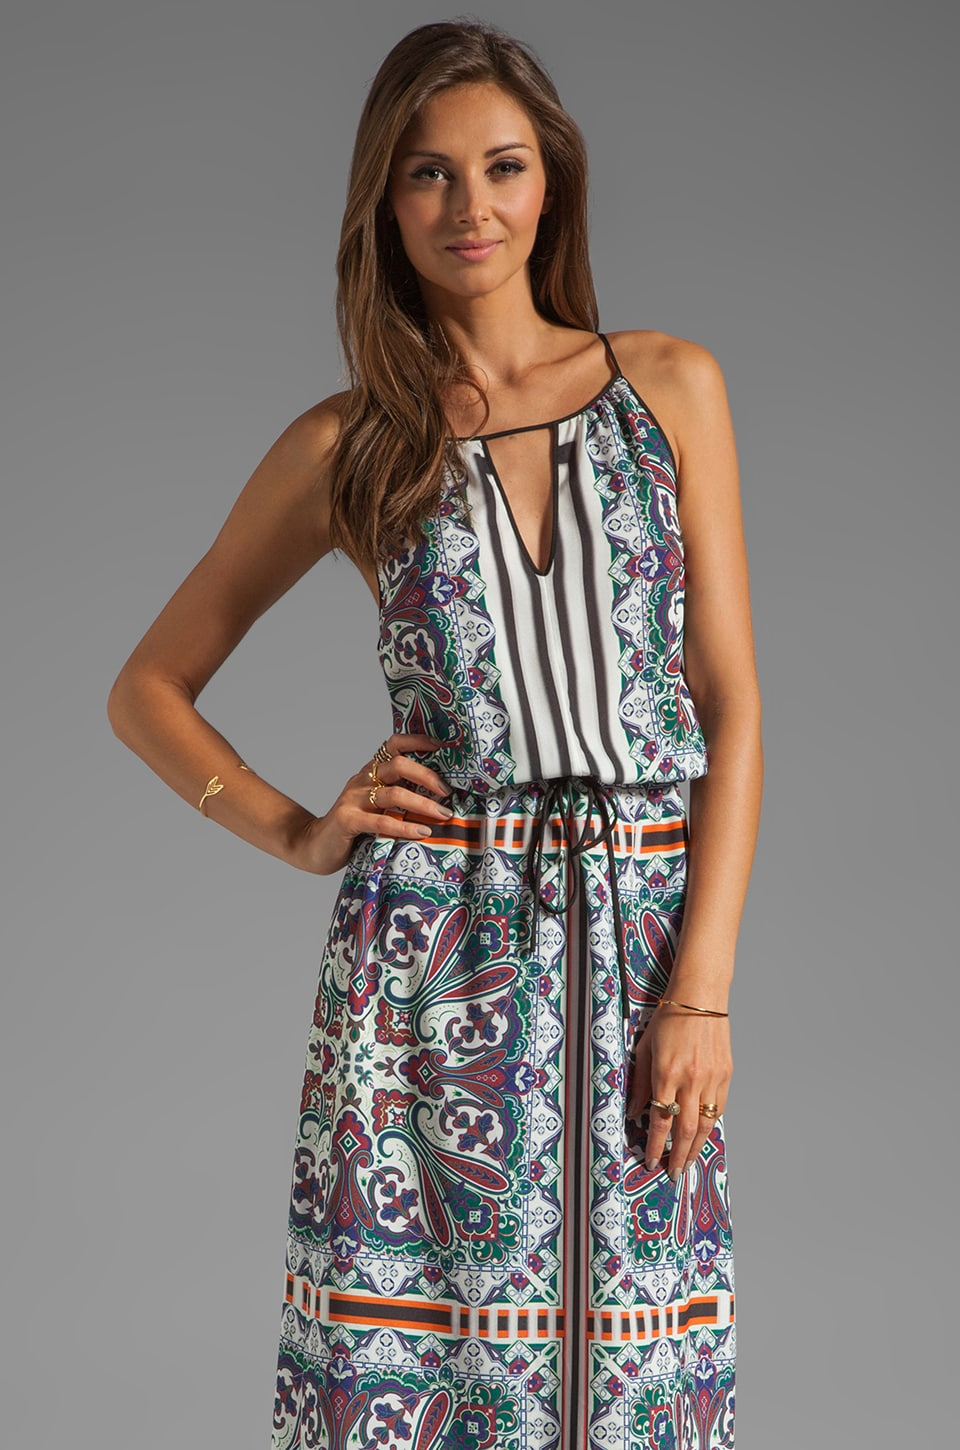 Clover Canyon Paisley Road Dress in Multi